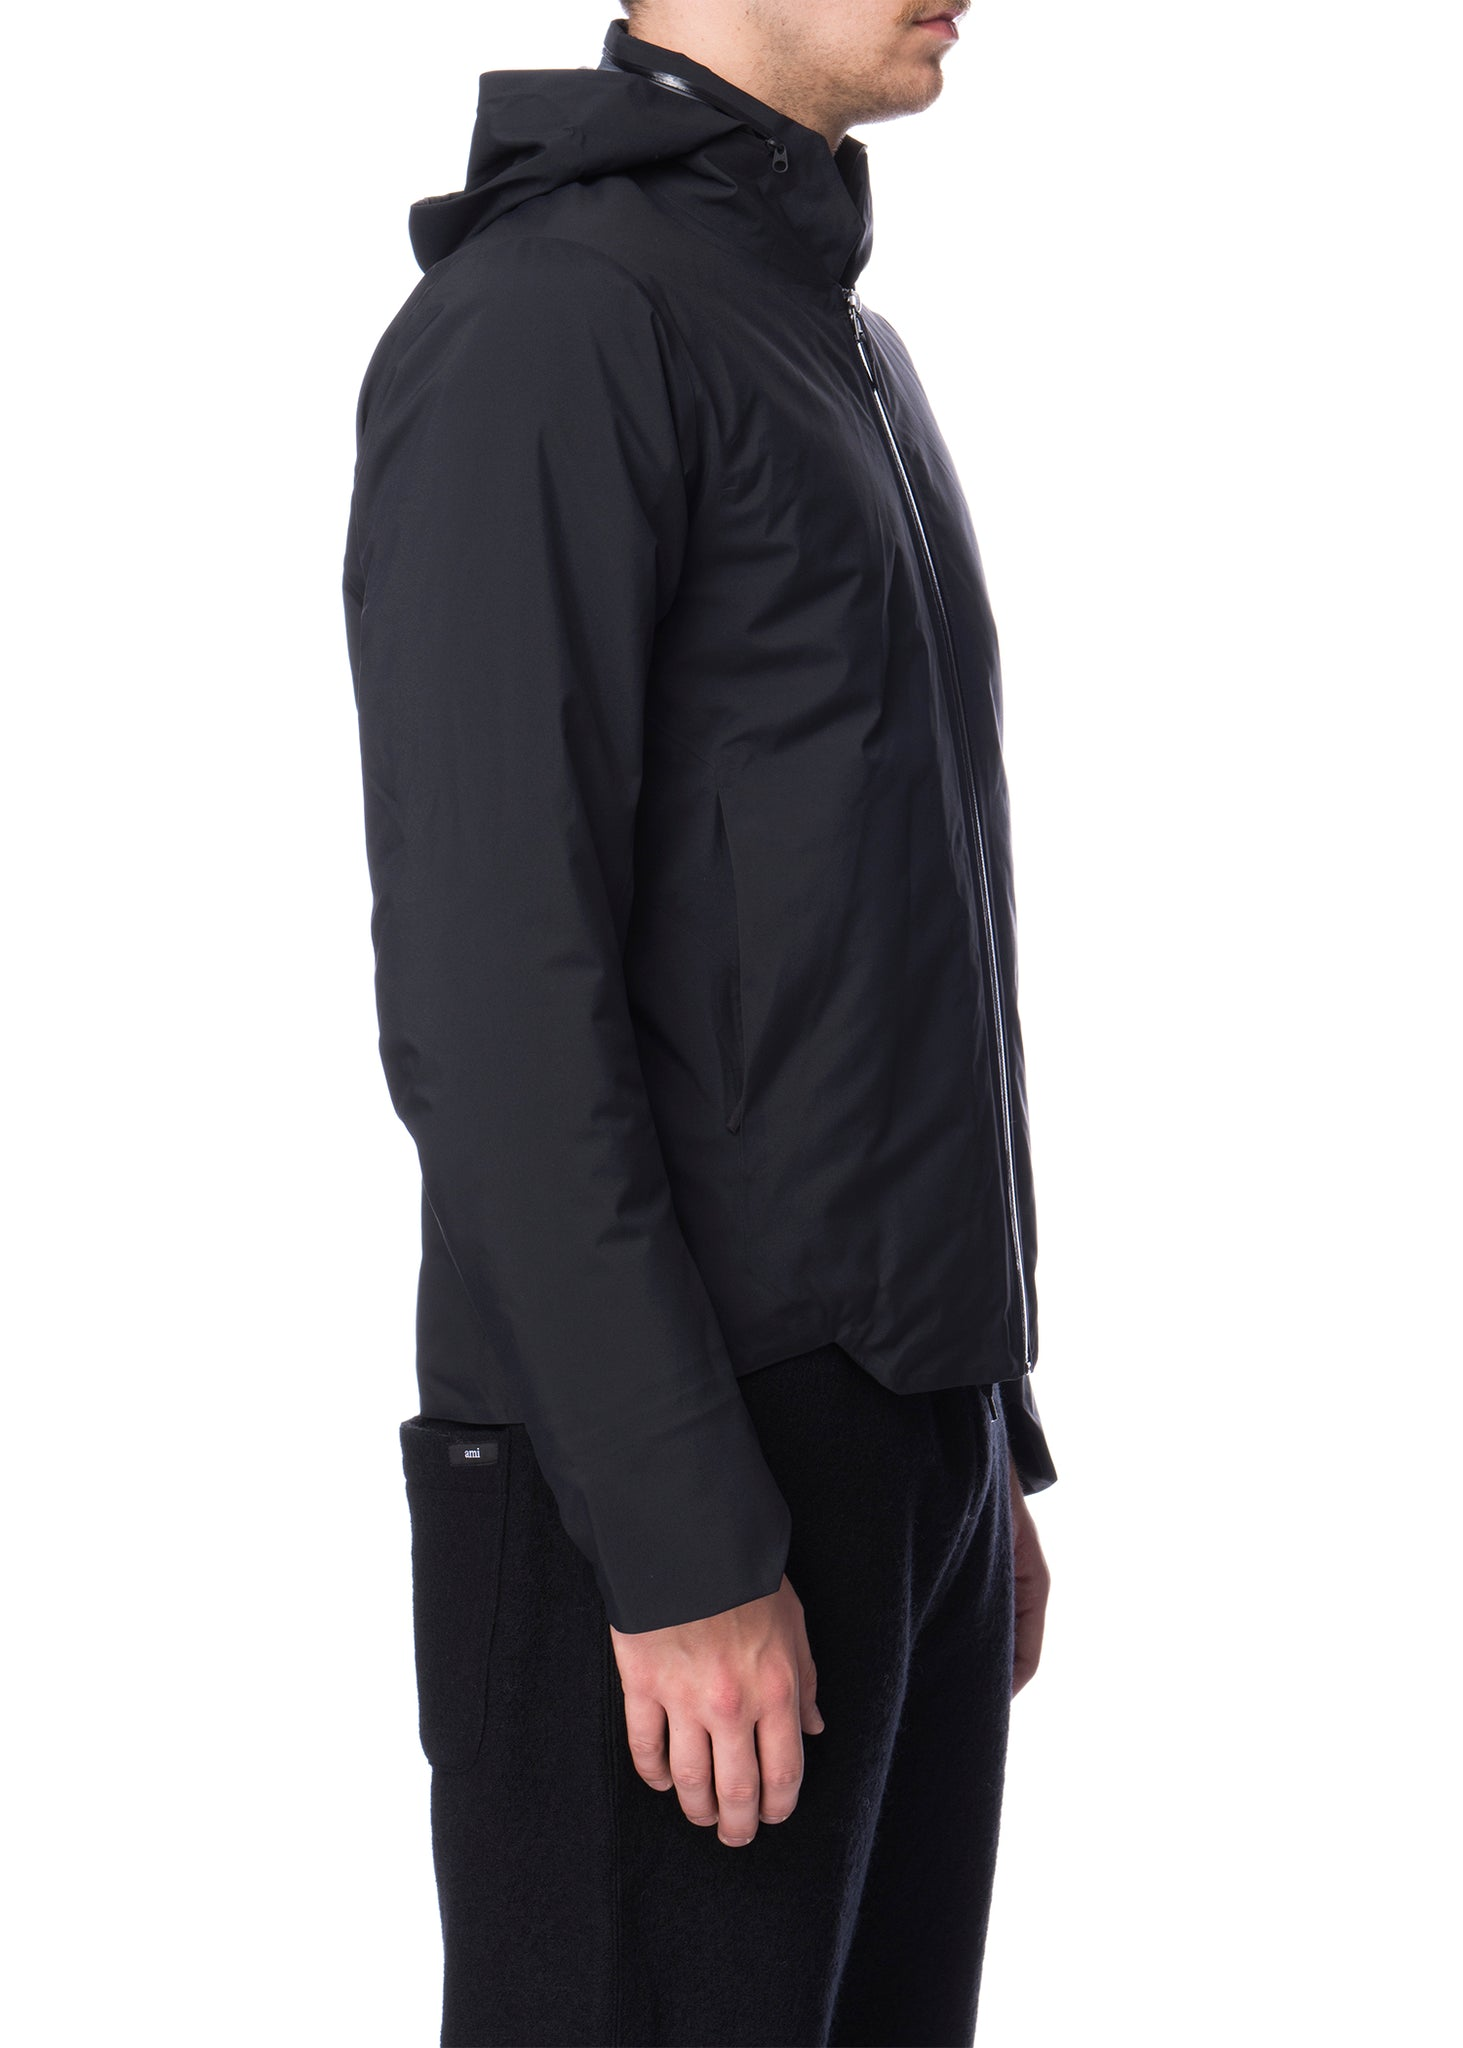 Manteau ACHROM IS noir|Black ACHROM IS jacket